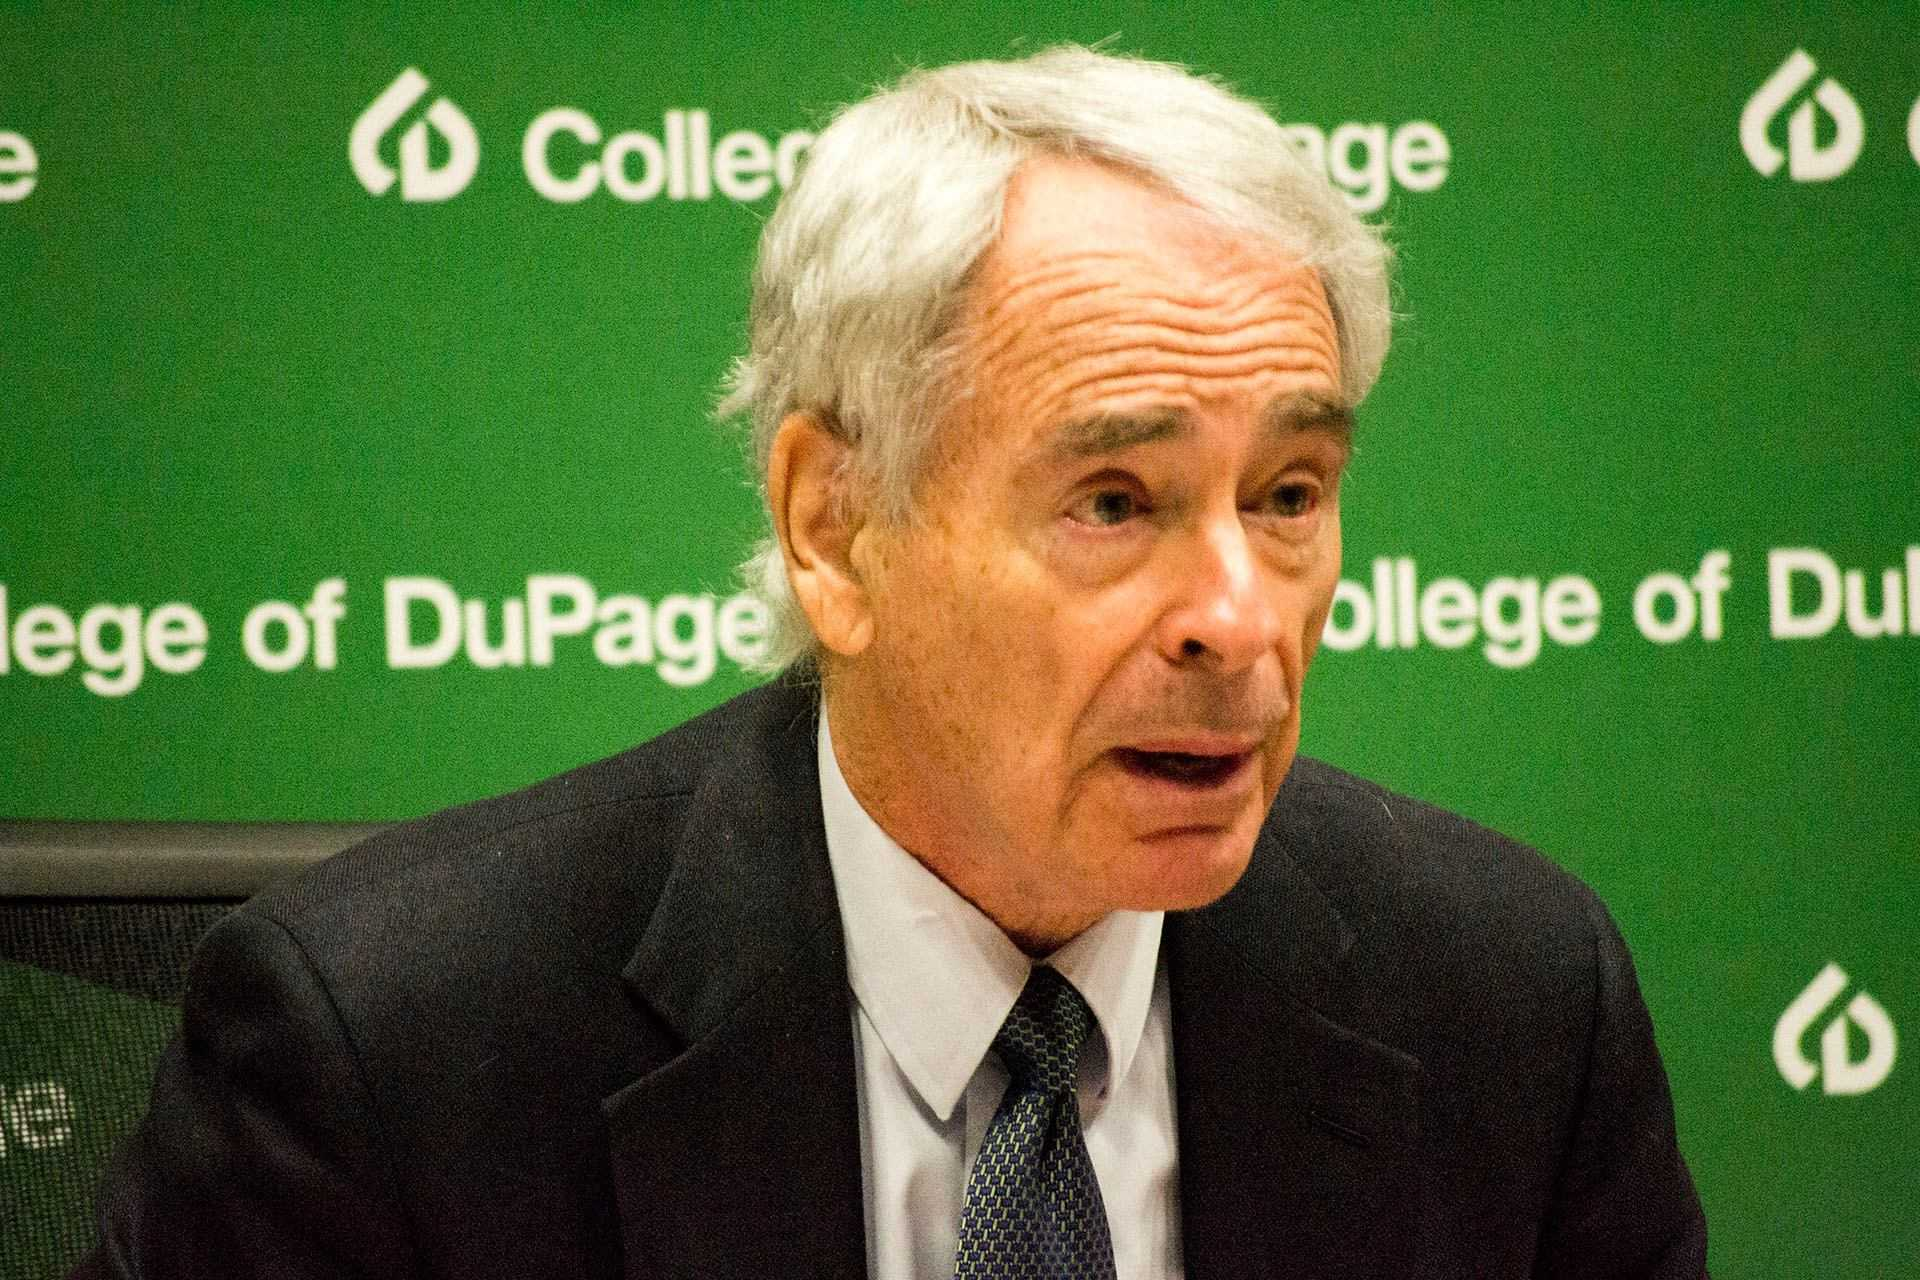 Trustee Charles Bernstein, President of the Audit Committee at a news conference the day the audit was released.